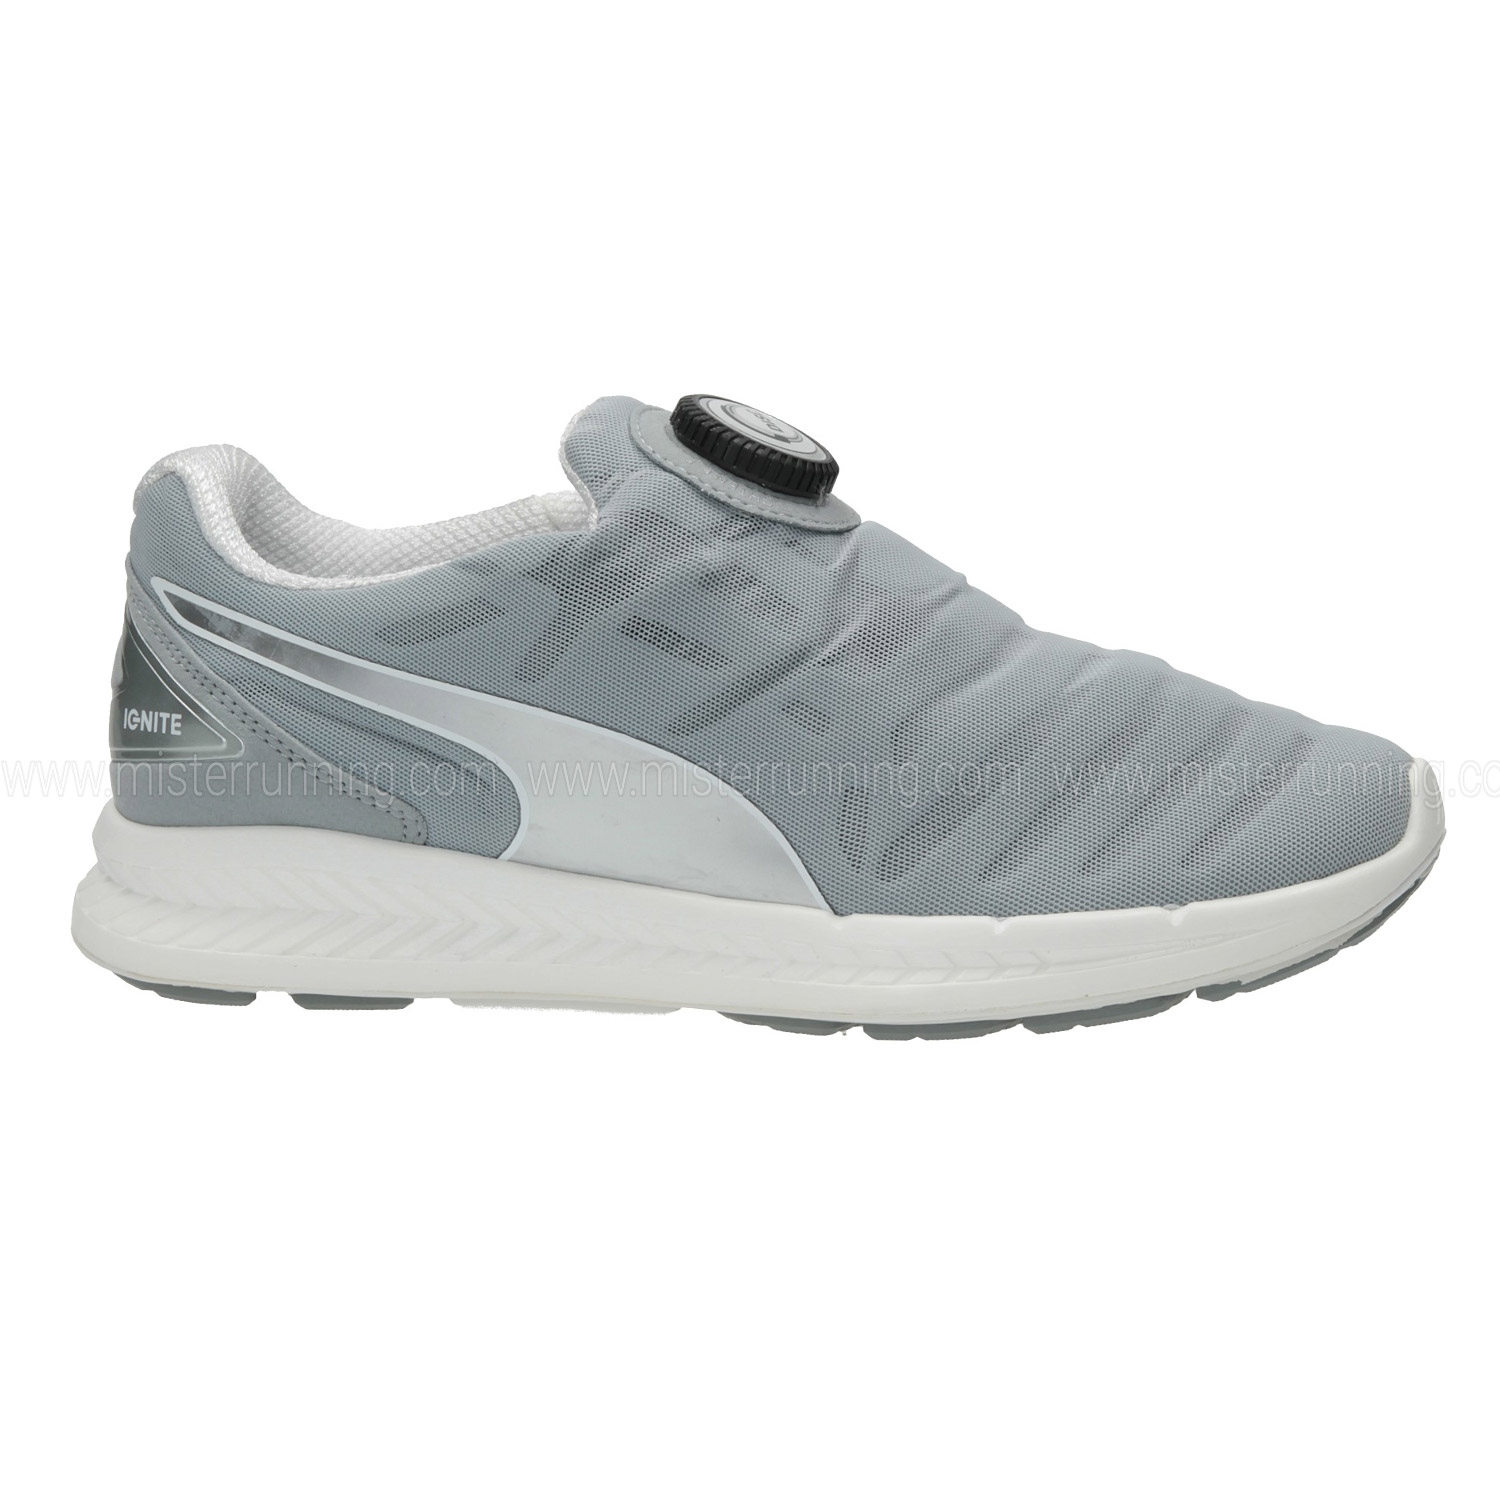 eb040adbbb5 Puma Ignite Disc Women s Running Shoes - Grey White